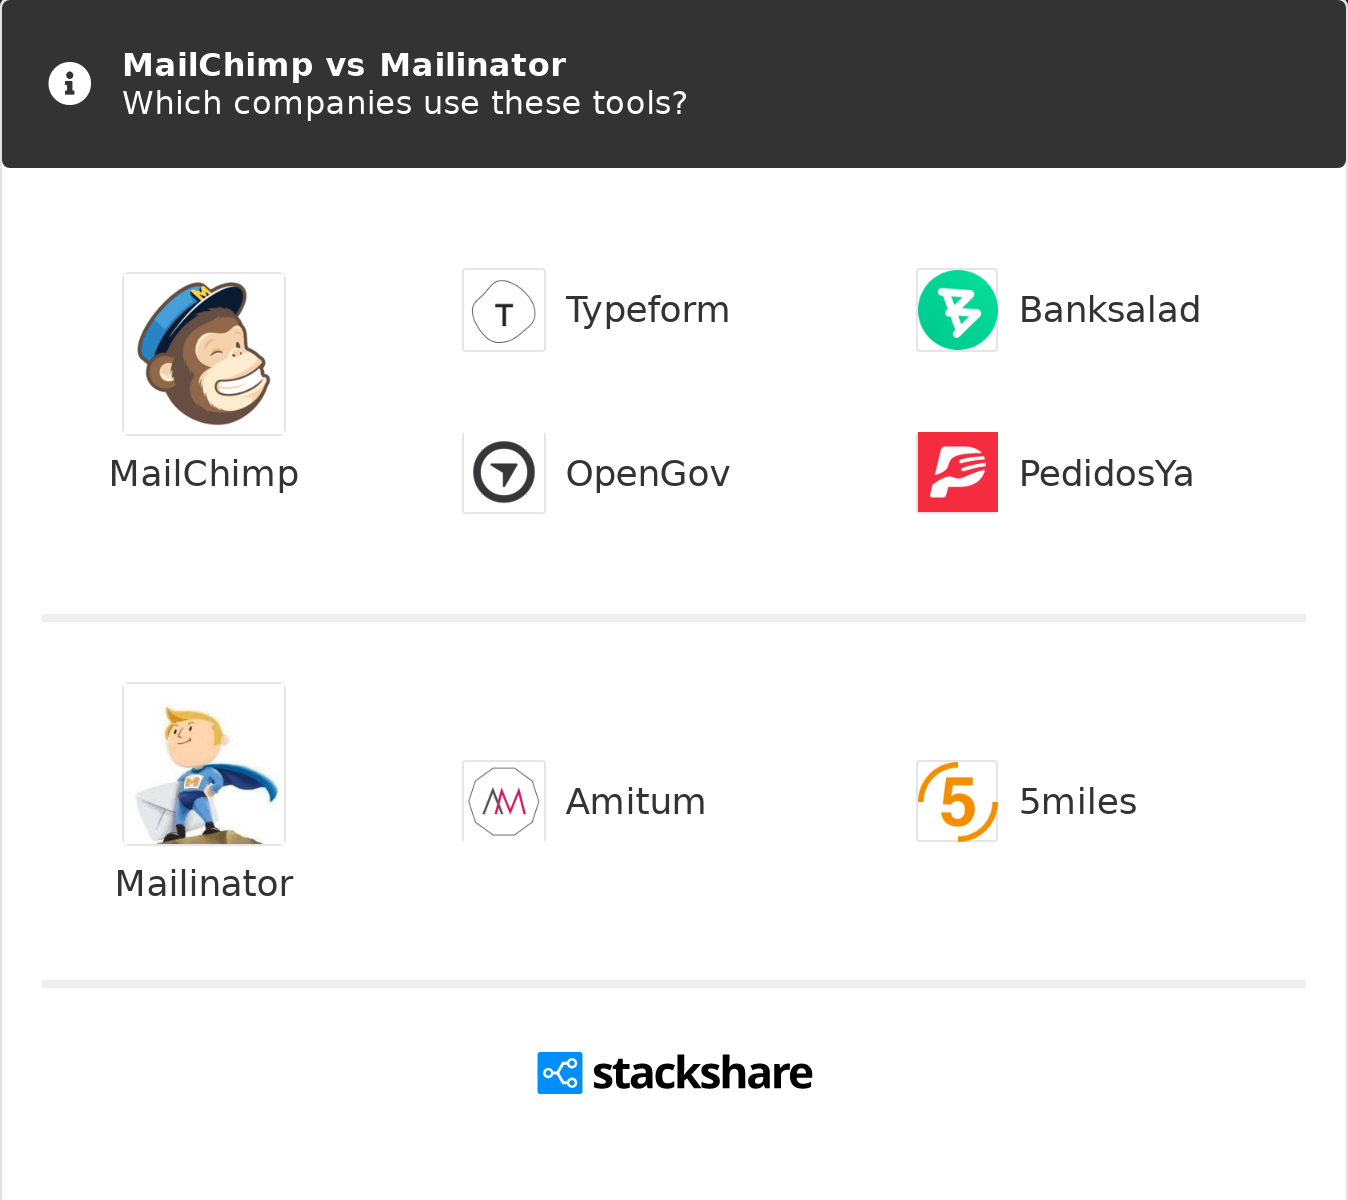 Mailchimp vs Mailinator | What are the differences?